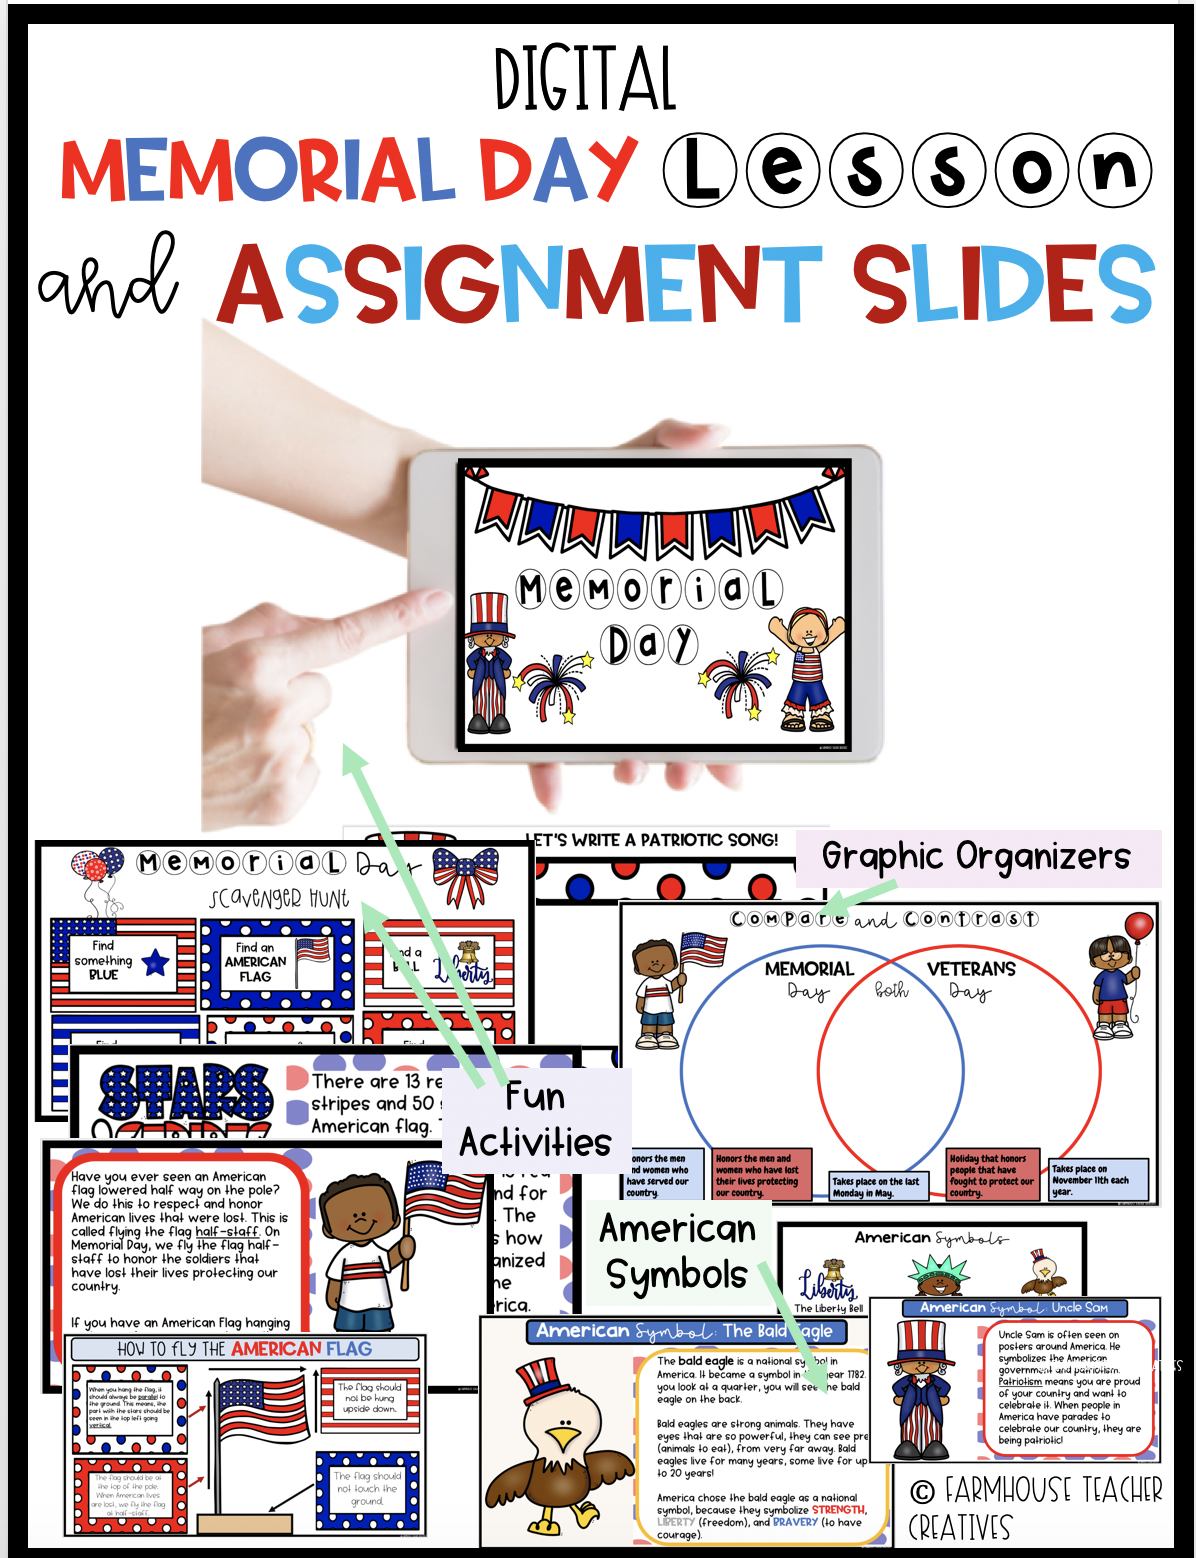 Digital Memorial Day Lesson and Flag Day Lesson - Assignment Slides Included